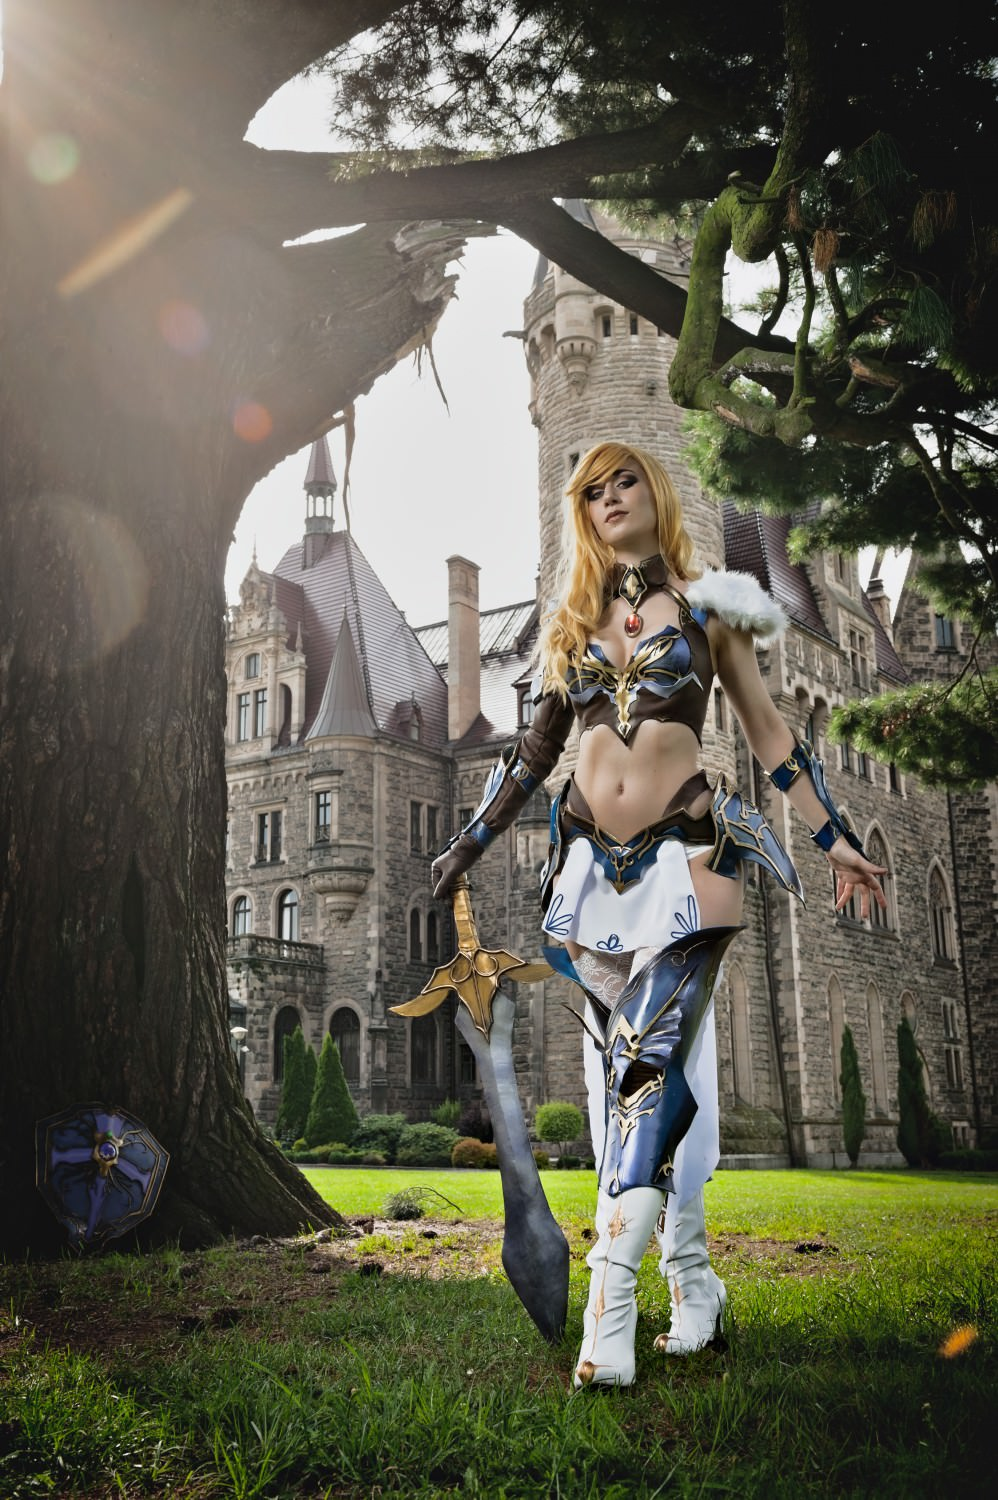 cosplay, costume, armor, fantasy, fantasy armor, fantasy warrior, warrior girl, blonde, blonde hair, blonde wig, chestplace, breastplate, leather, leather armor, eva foam, worbla, legendonline, gryonline, photoshoot, game cosplay, game costume, game photo, cosplayer, sword, shield, crossbow, shieldmaiden, castle, michalzagorny, michałzagorny,